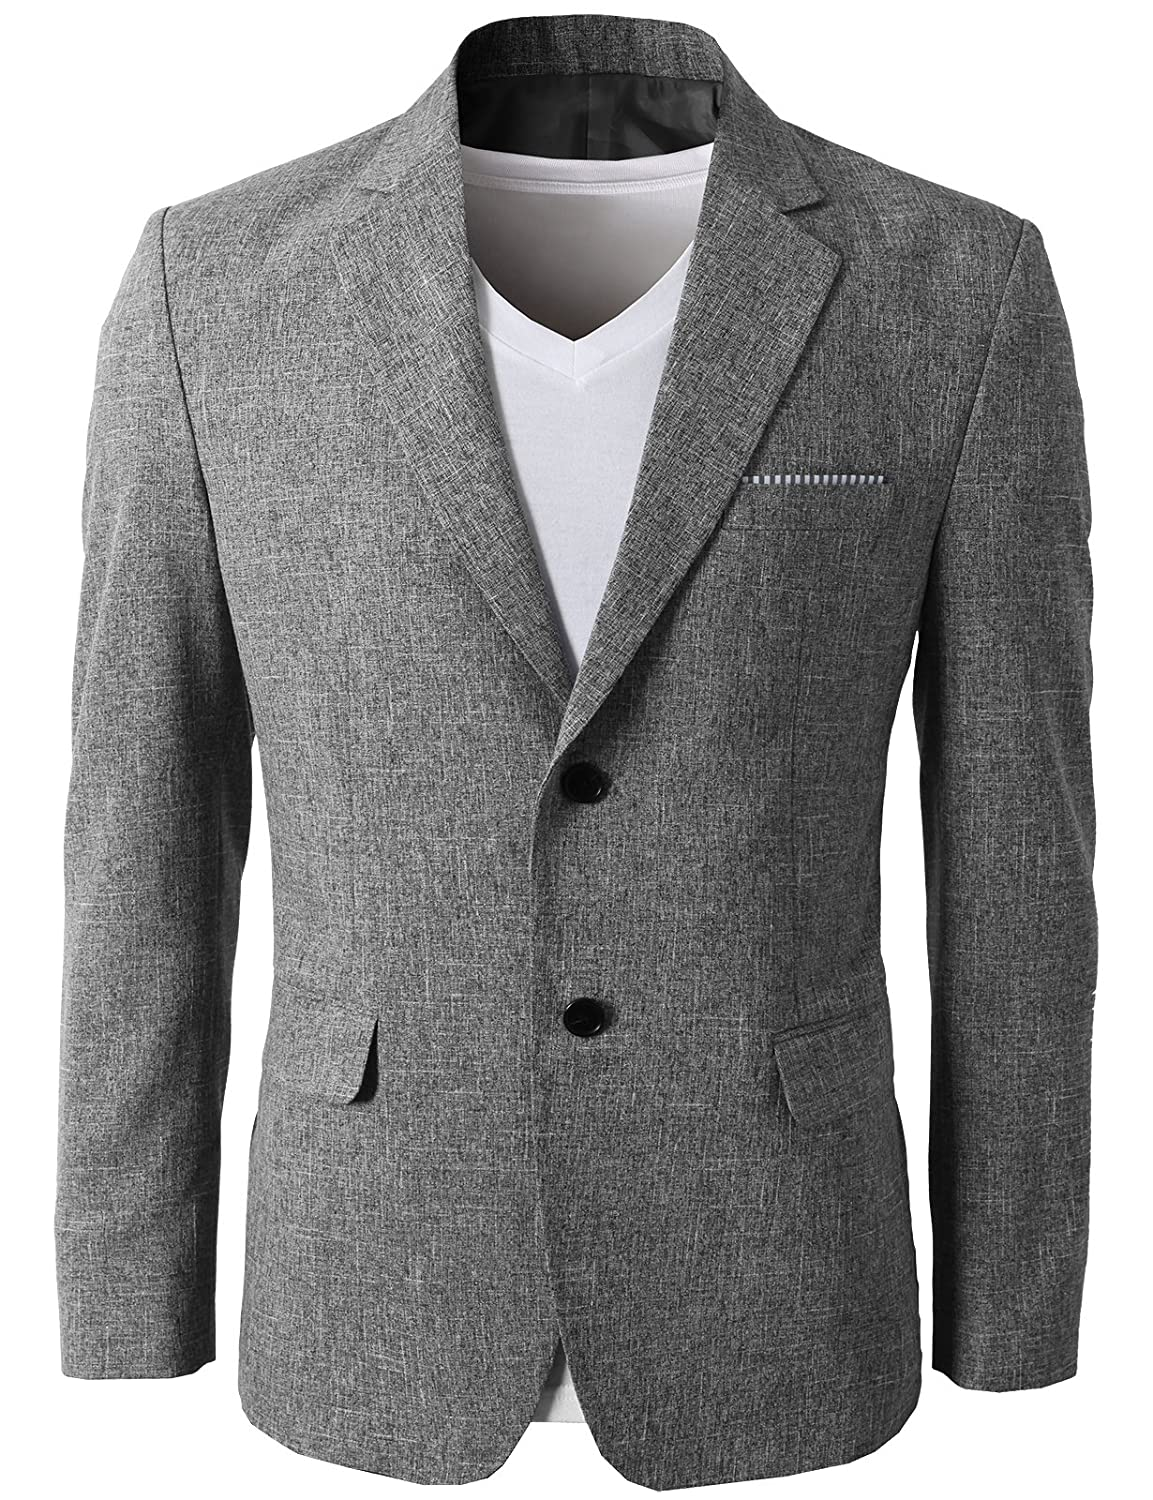 f8347722caf6 H2H Mens Slim Fit Suits Casual Solid Lightweight Blazer Jackets One Button  Flap Pockets at Amazon Men's Clothing store: Blazers And Sports Jackets